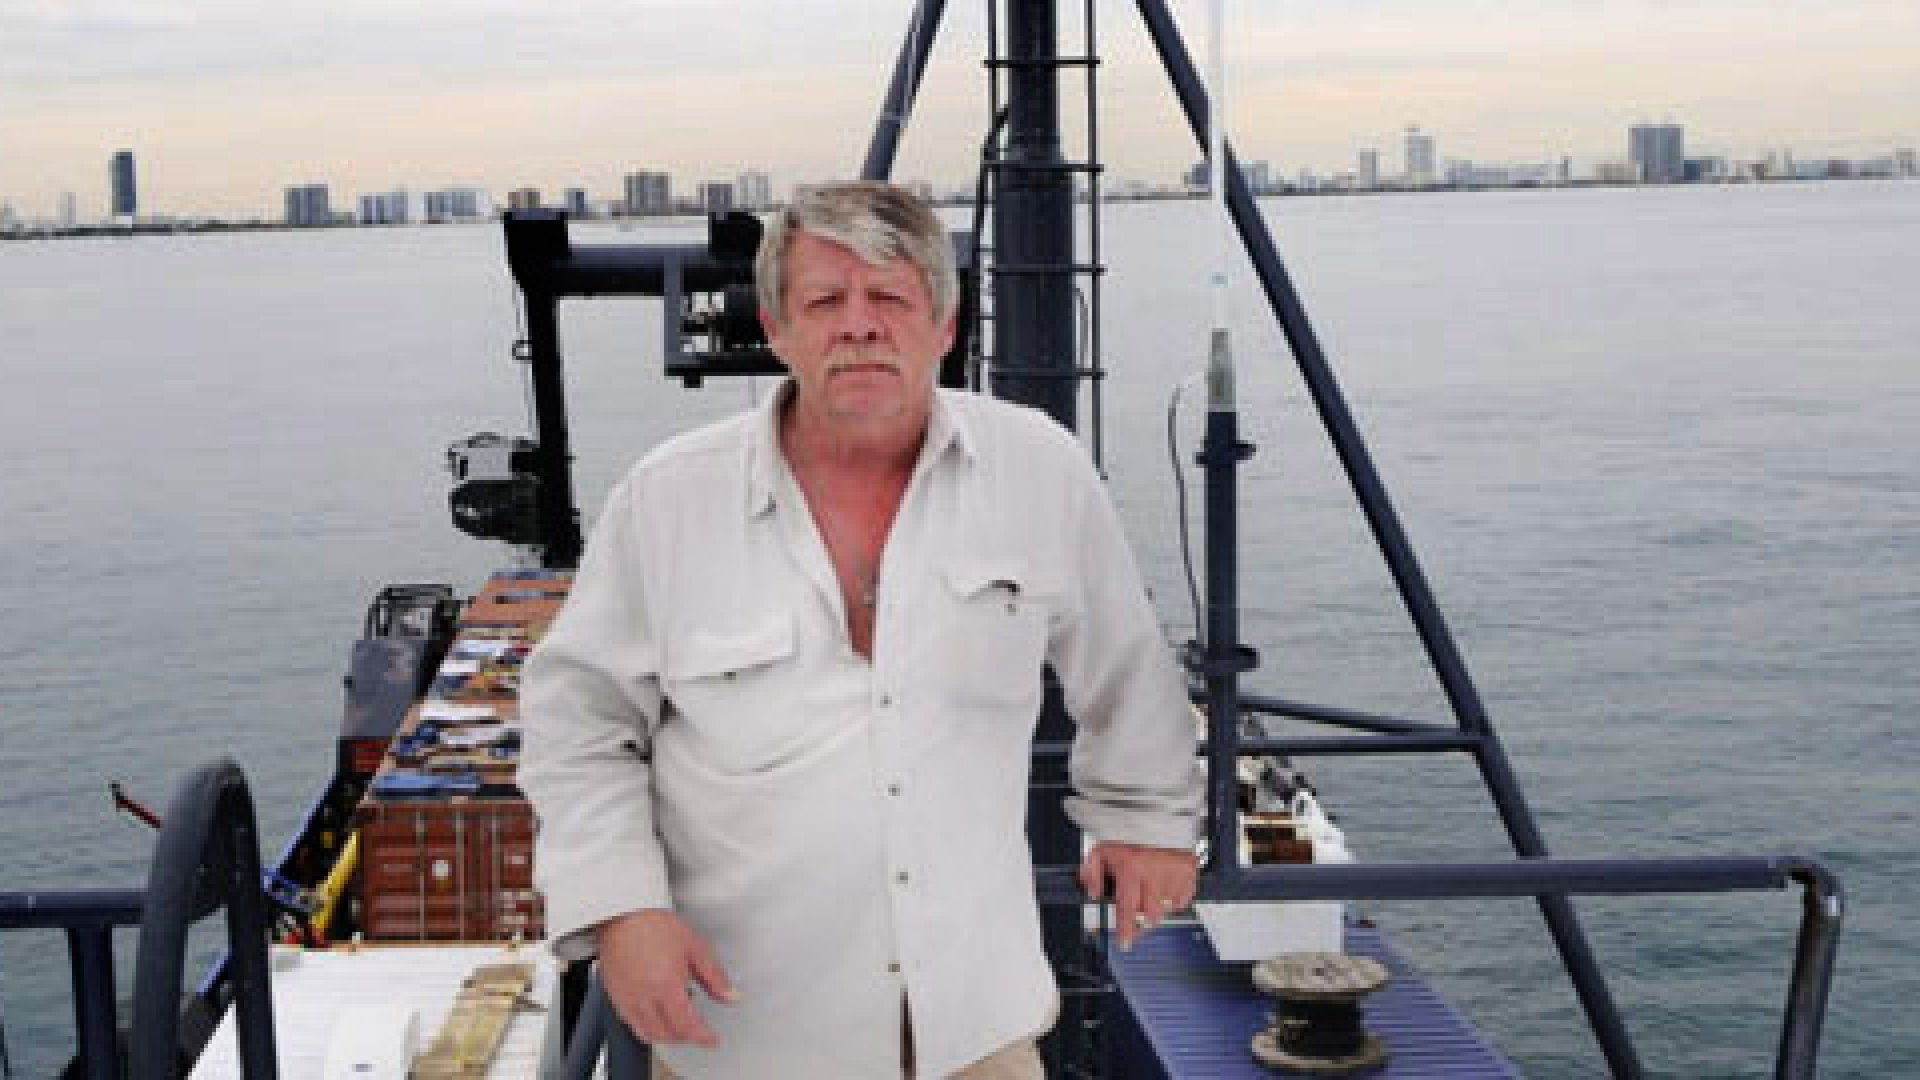 Greg Brooks, owner of Sub Sea Research, on the M/V Sea Hunter.